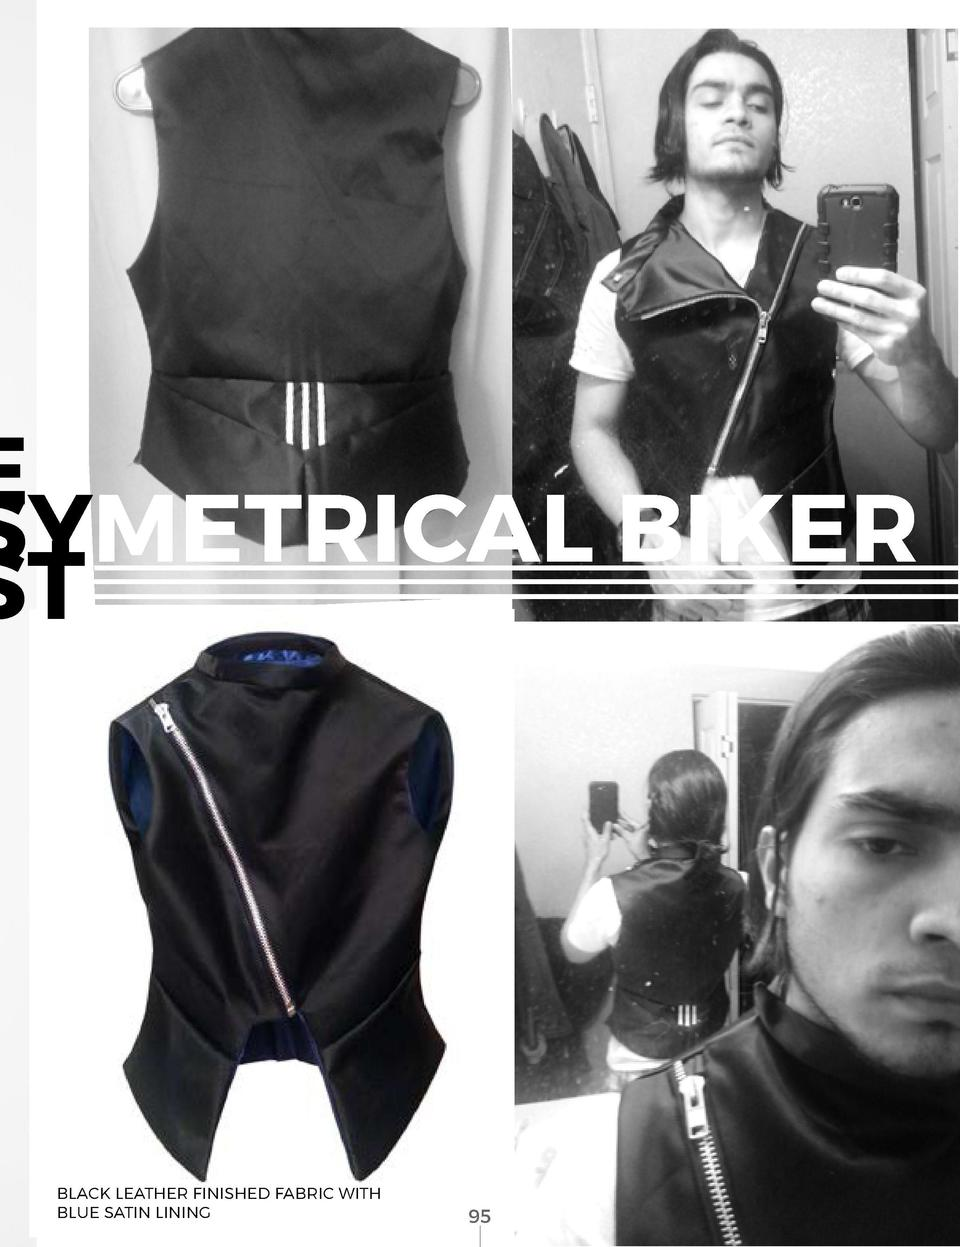 THE ASSYMETRICAL BIKER VEST  95            94  BLACK LEATHER FINISHED FABRIC WITH BLUE SATIN LINING